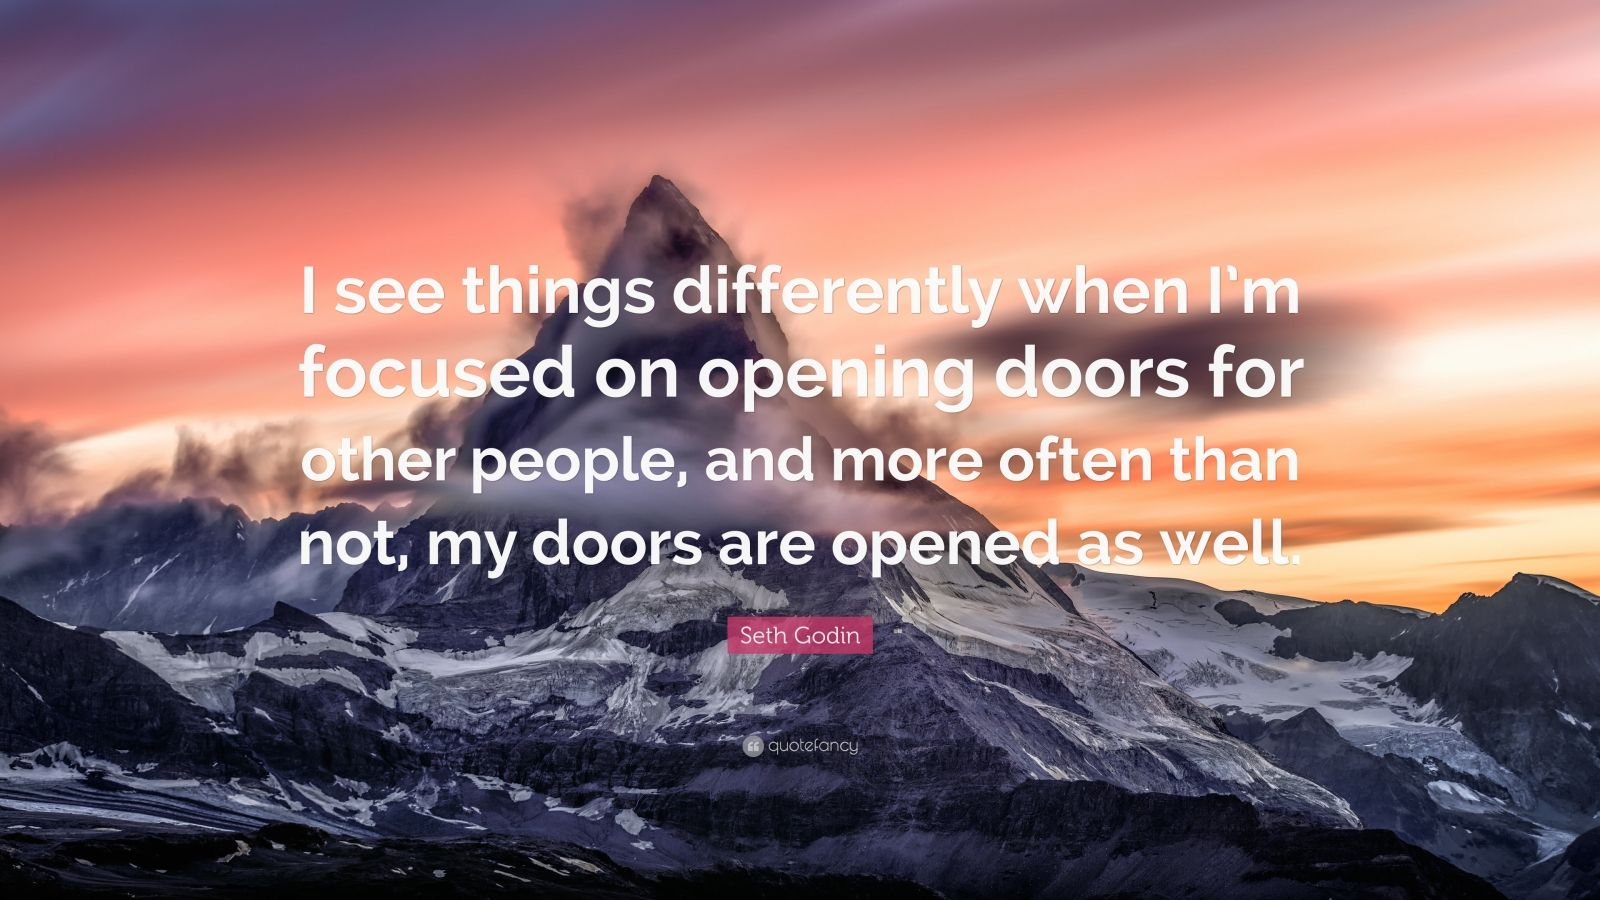 """Seth Godin Quote: """"I see things differently when I'm focused on opening doors for other people, and more often than not, my doors are opened as well."""""""